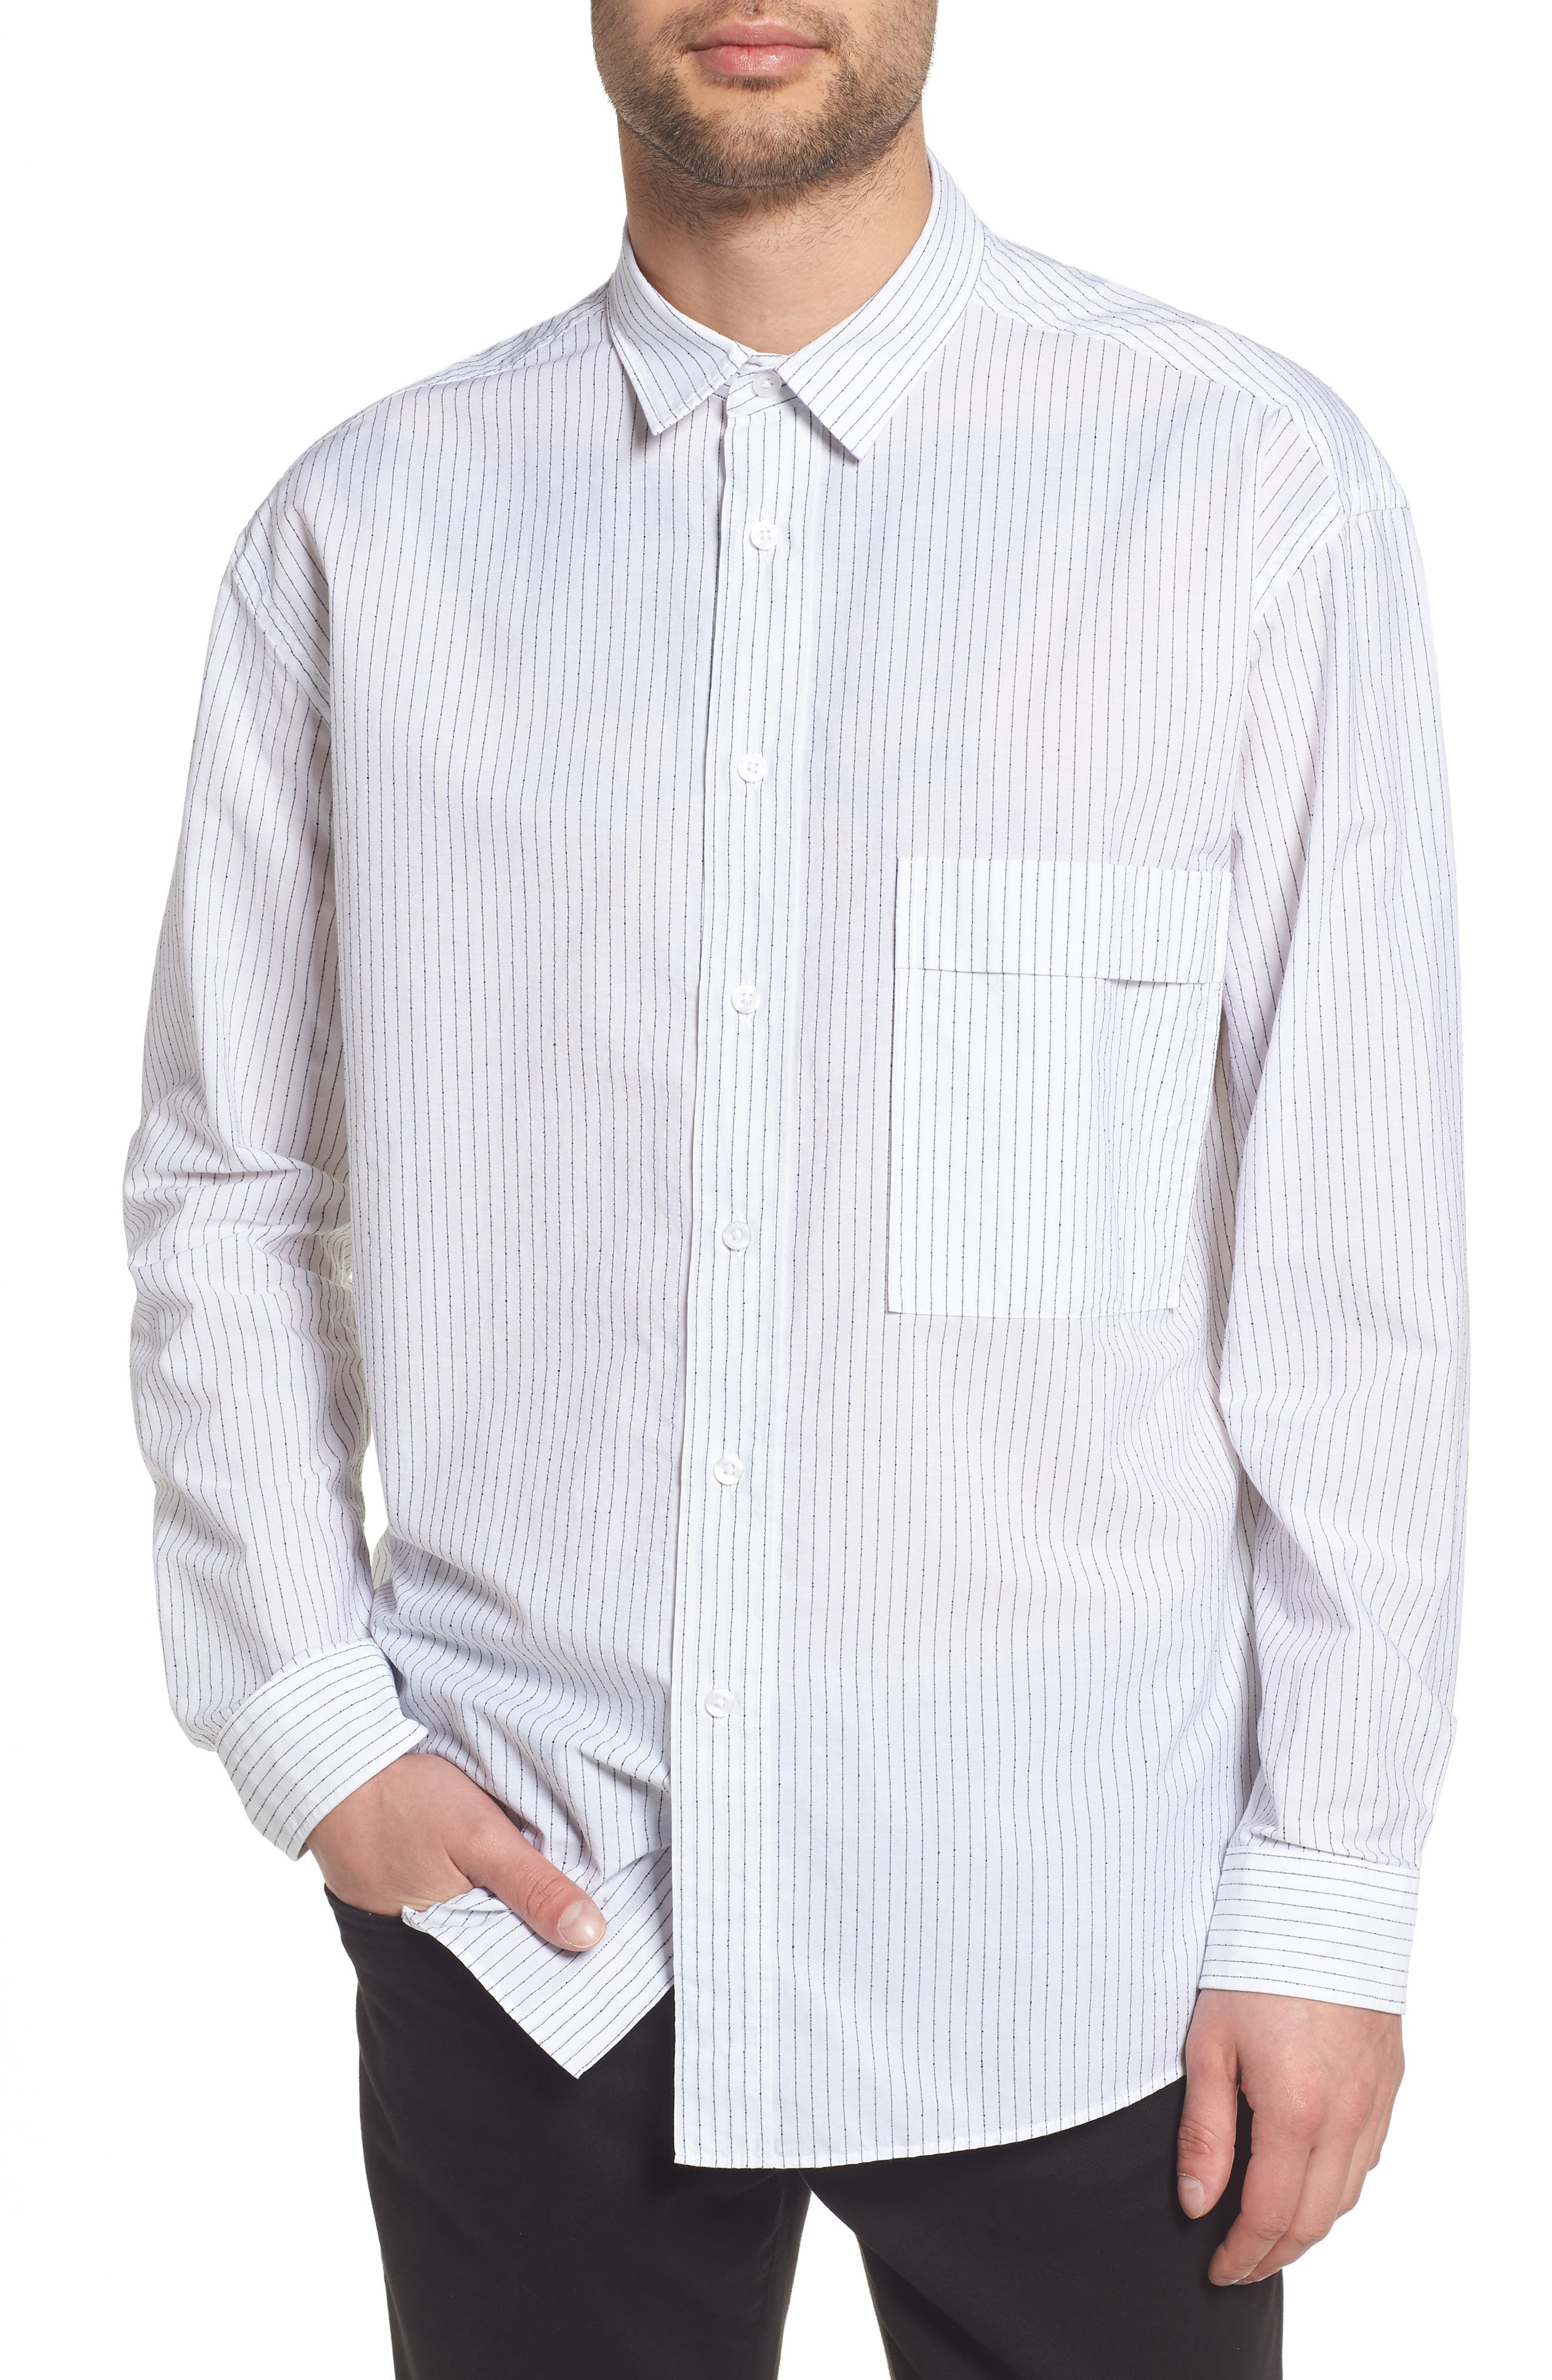 Ery Stripe Classic Fit Sport Shirt,                         Main,                         color, WHITE